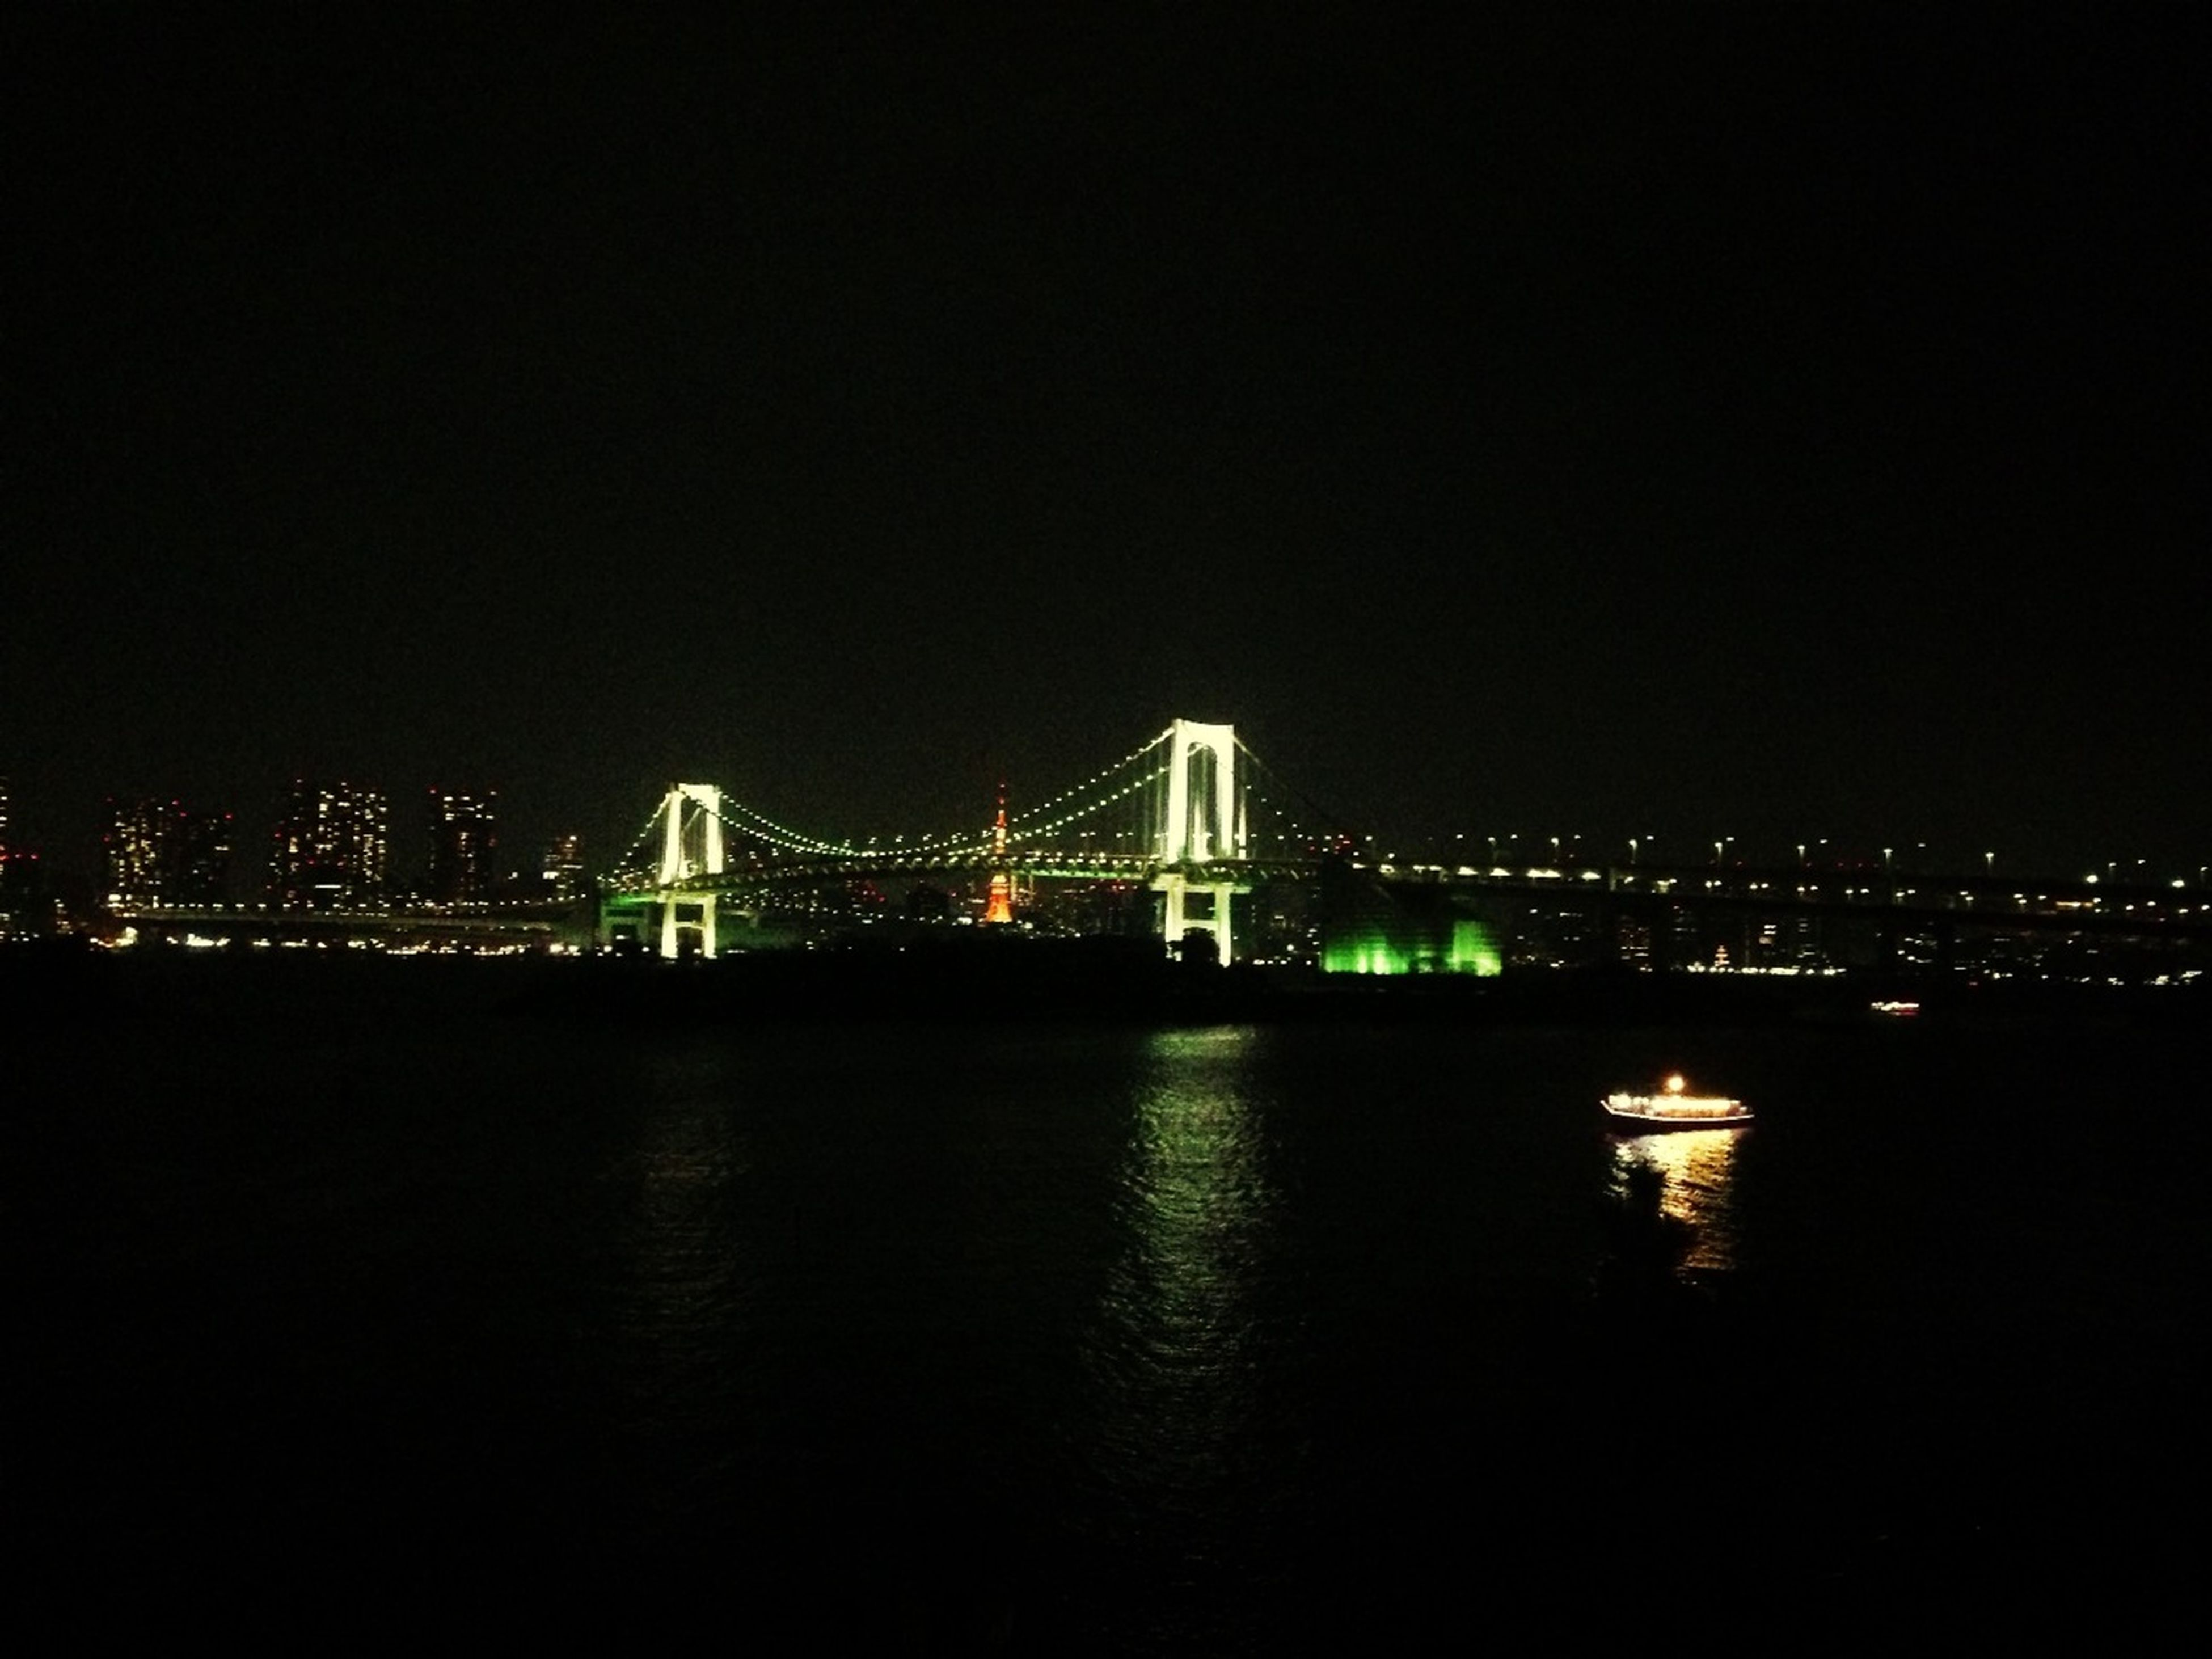 illuminated, night, water, architecture, built structure, city, river, copy space, waterfront, connection, bridge - man made structure, cityscape, building exterior, clear sky, reflection, sea, bridge, dark, suspension bridge, engineering